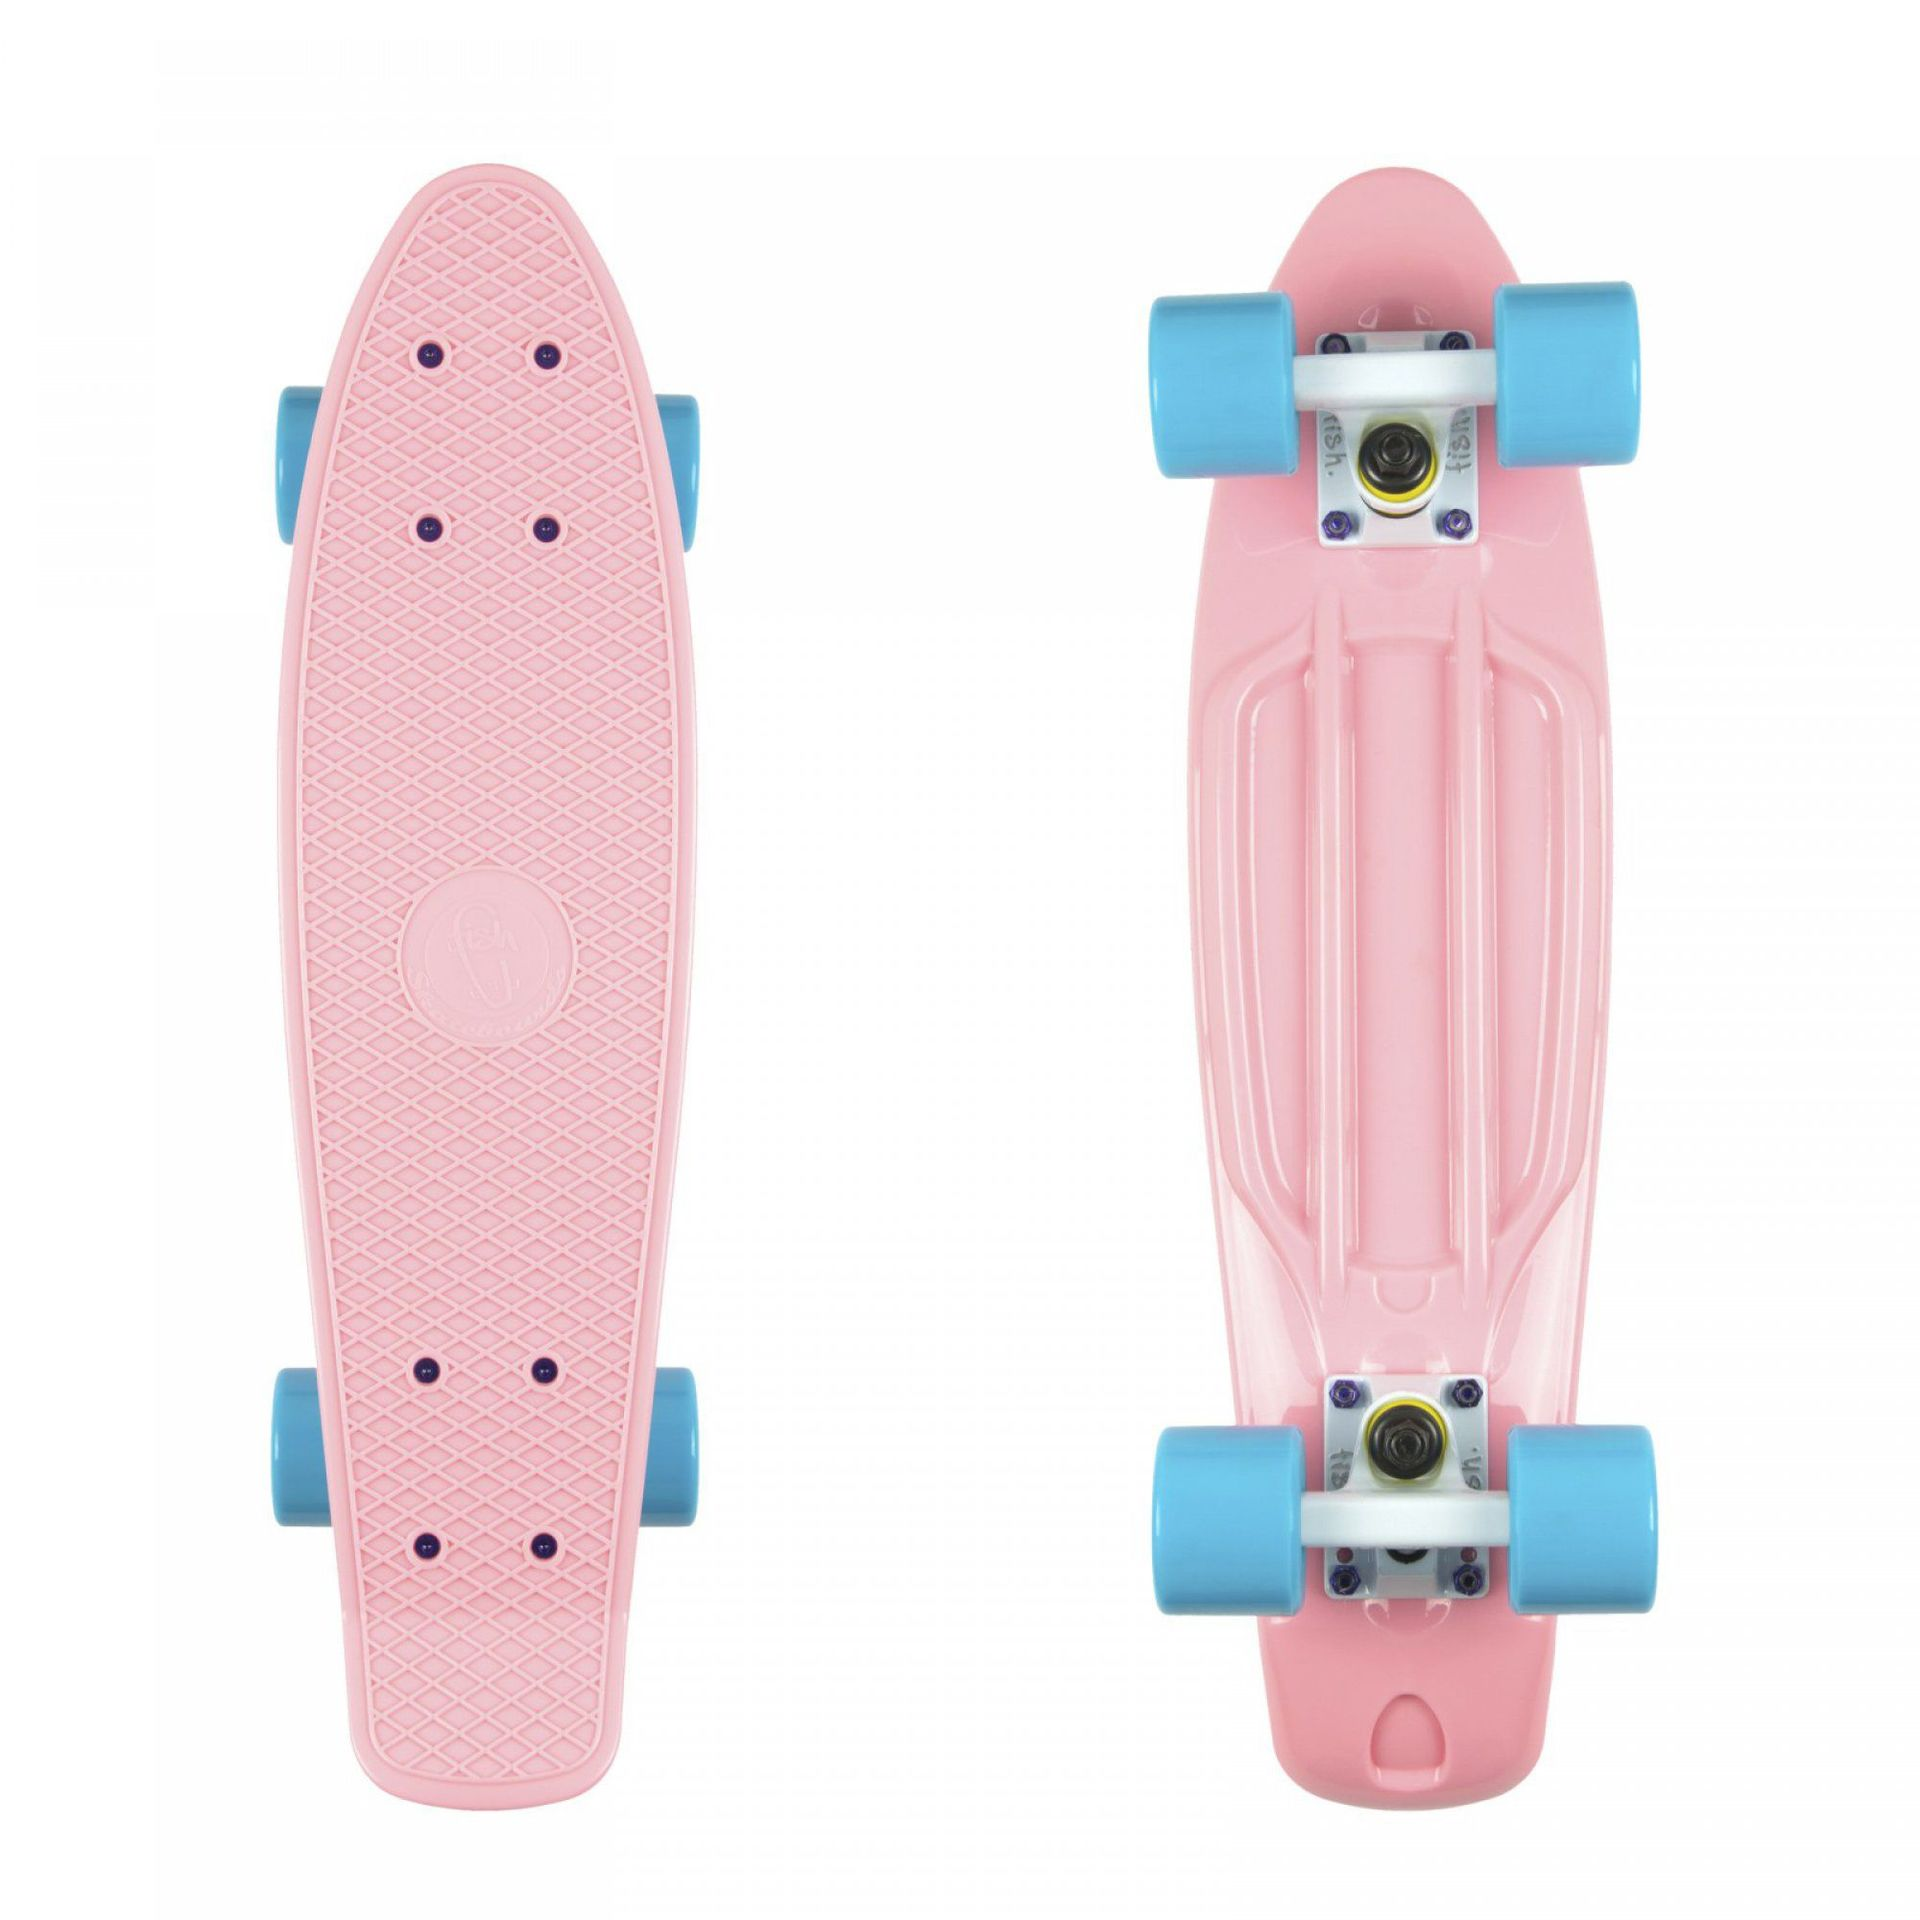 FISHBOARD FISH SKATEBOARDS CLASSIC SUMMER PINK|WHITE|SUMMER BLUE 1